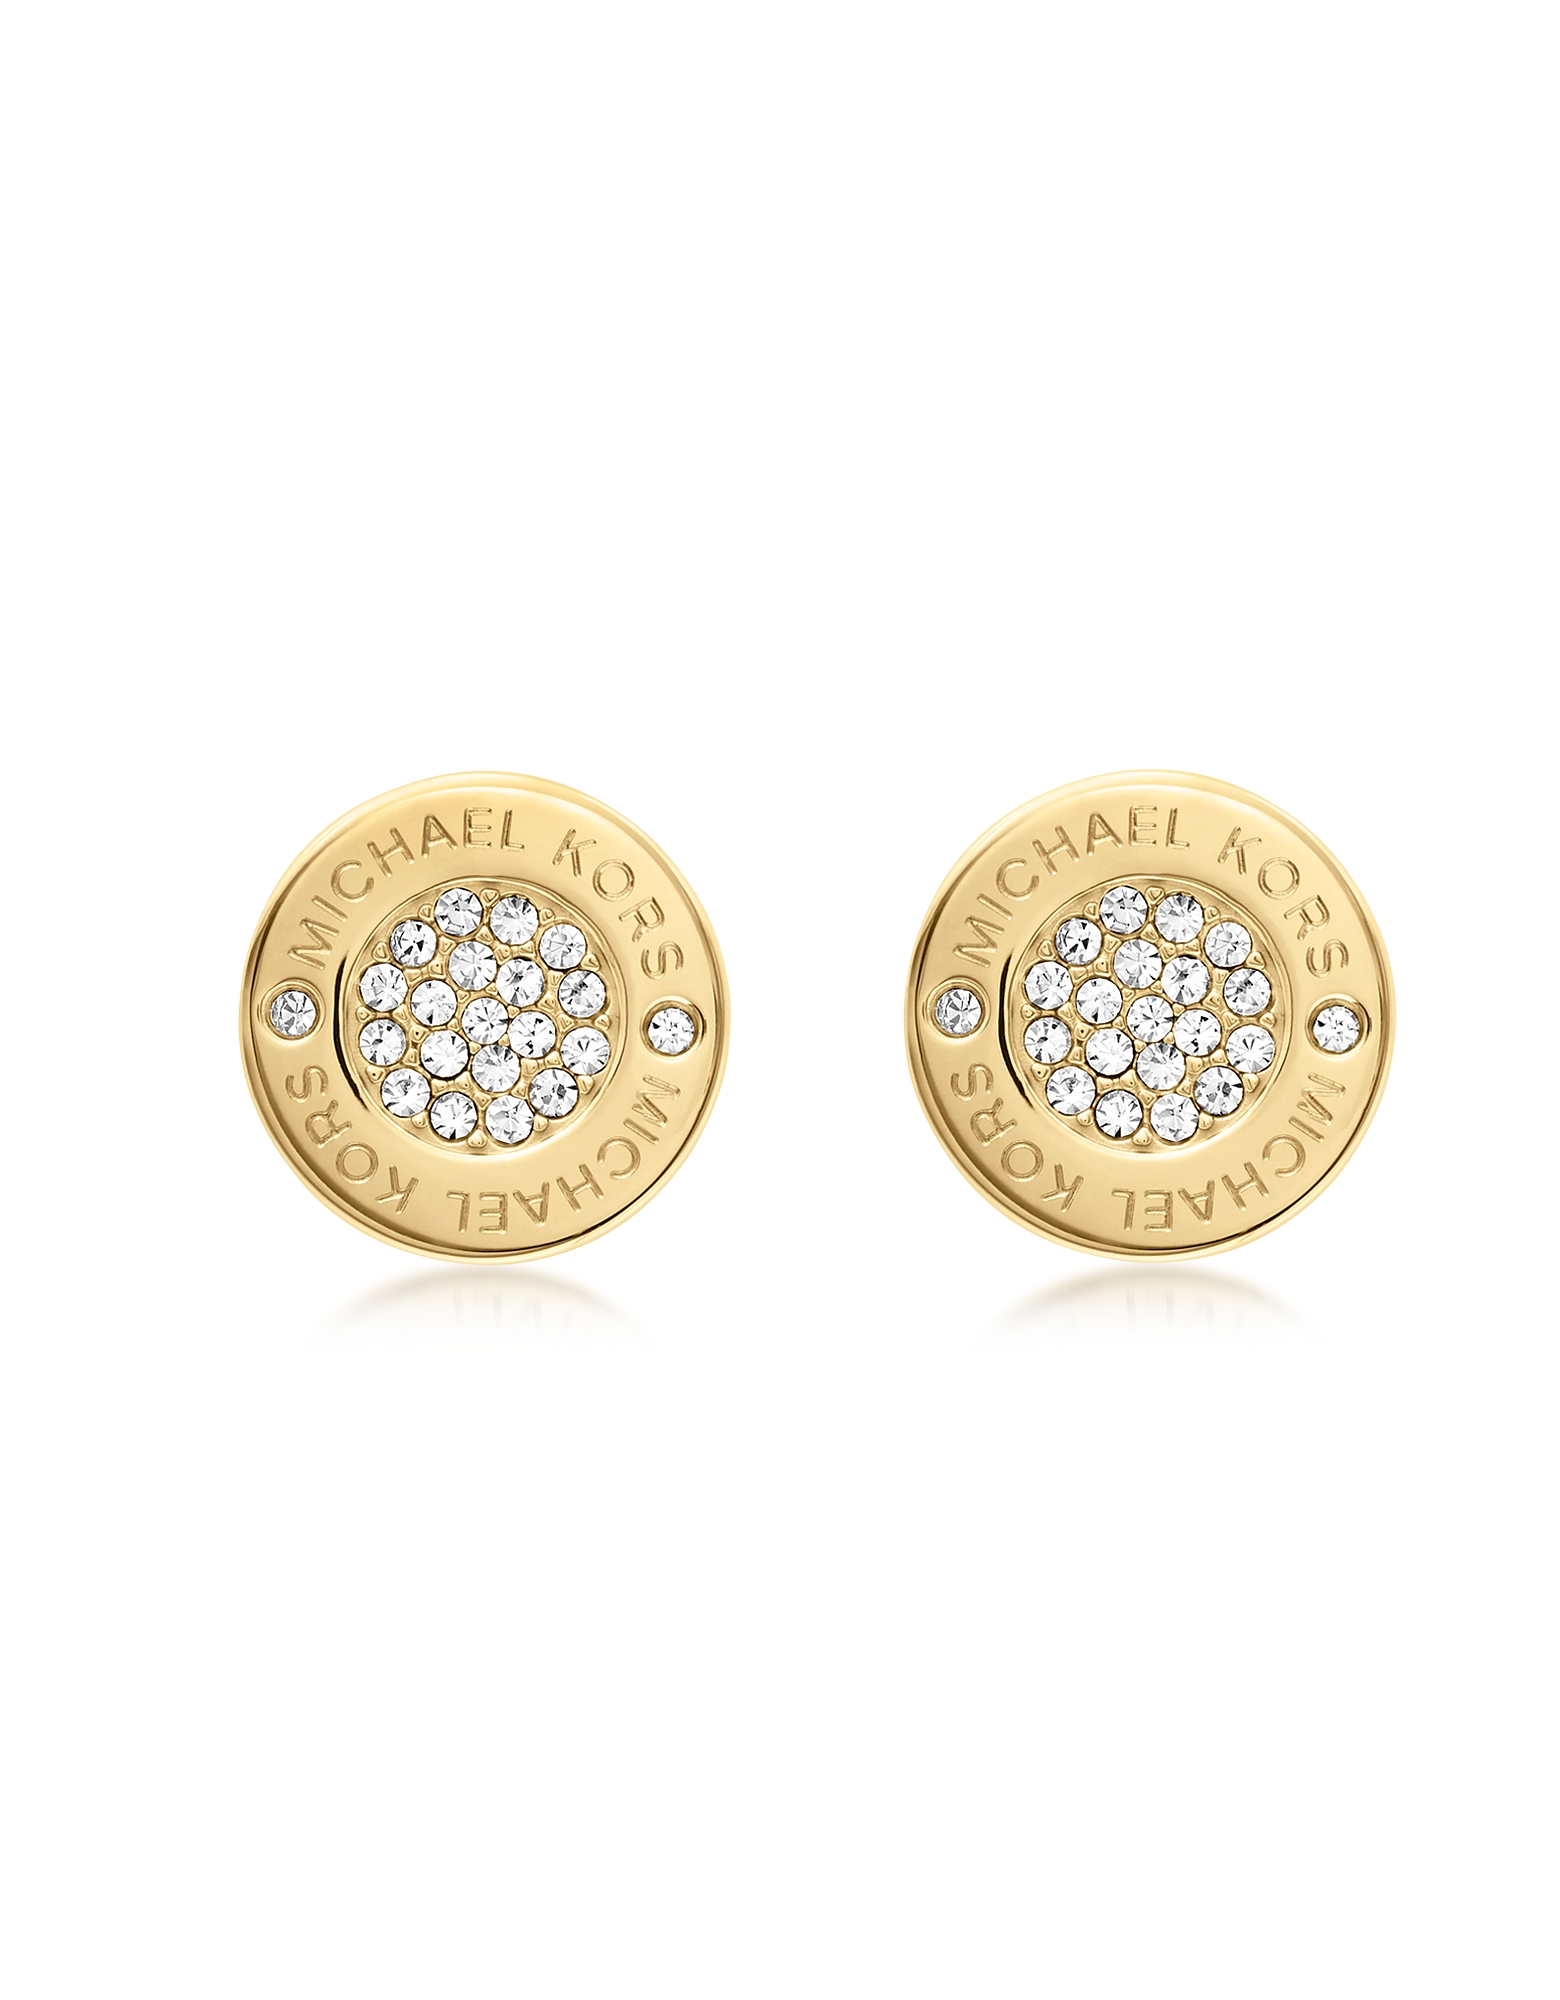 Michael Kors Earrings, Heritage Pave Stud Earrings